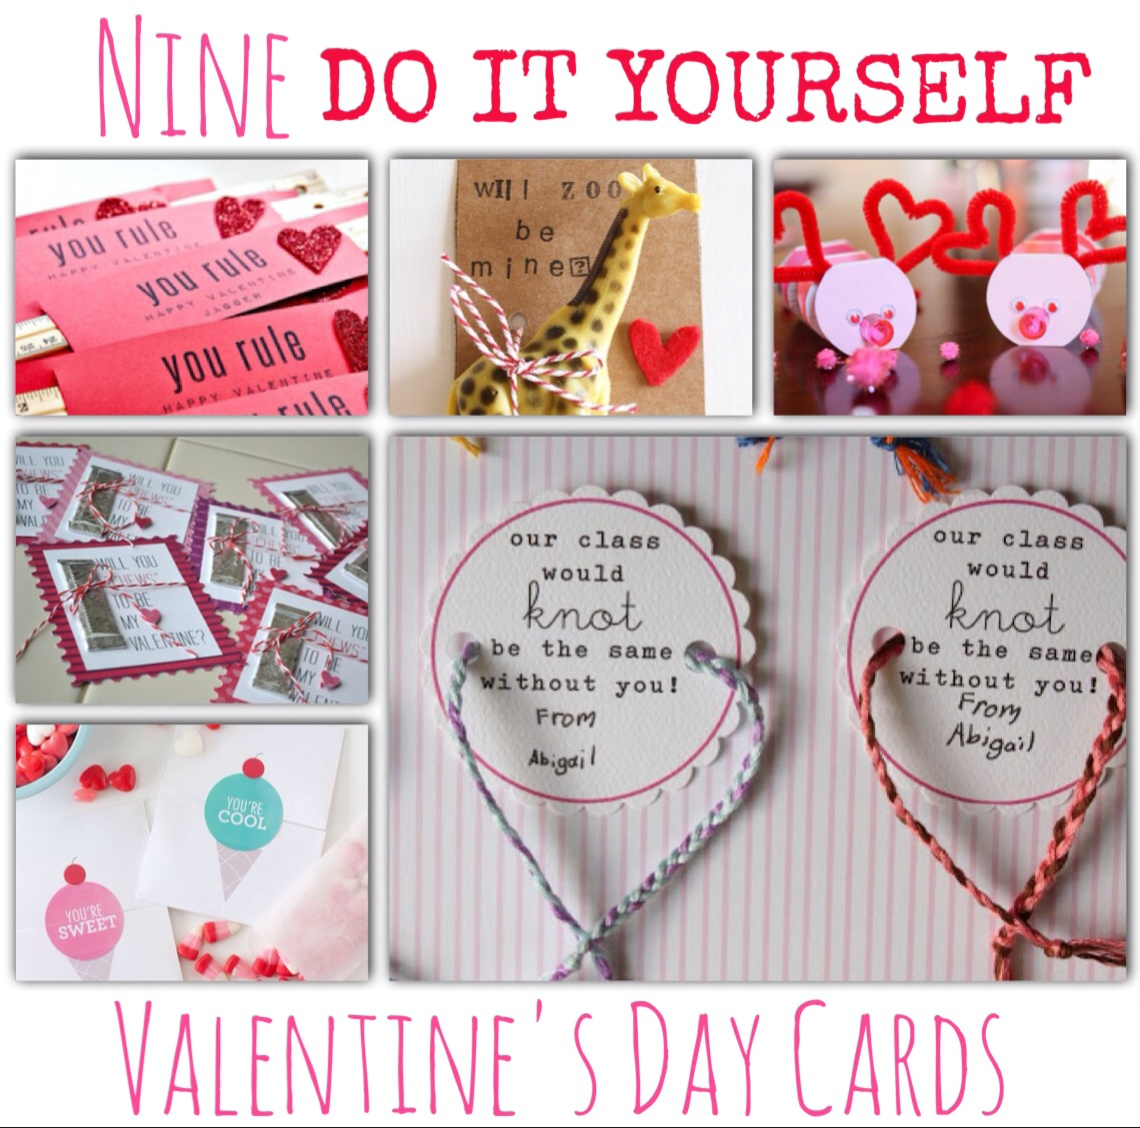 9 DIY Valentines Day Cards The Helpmates – Make Your Own Valentines Day Cards